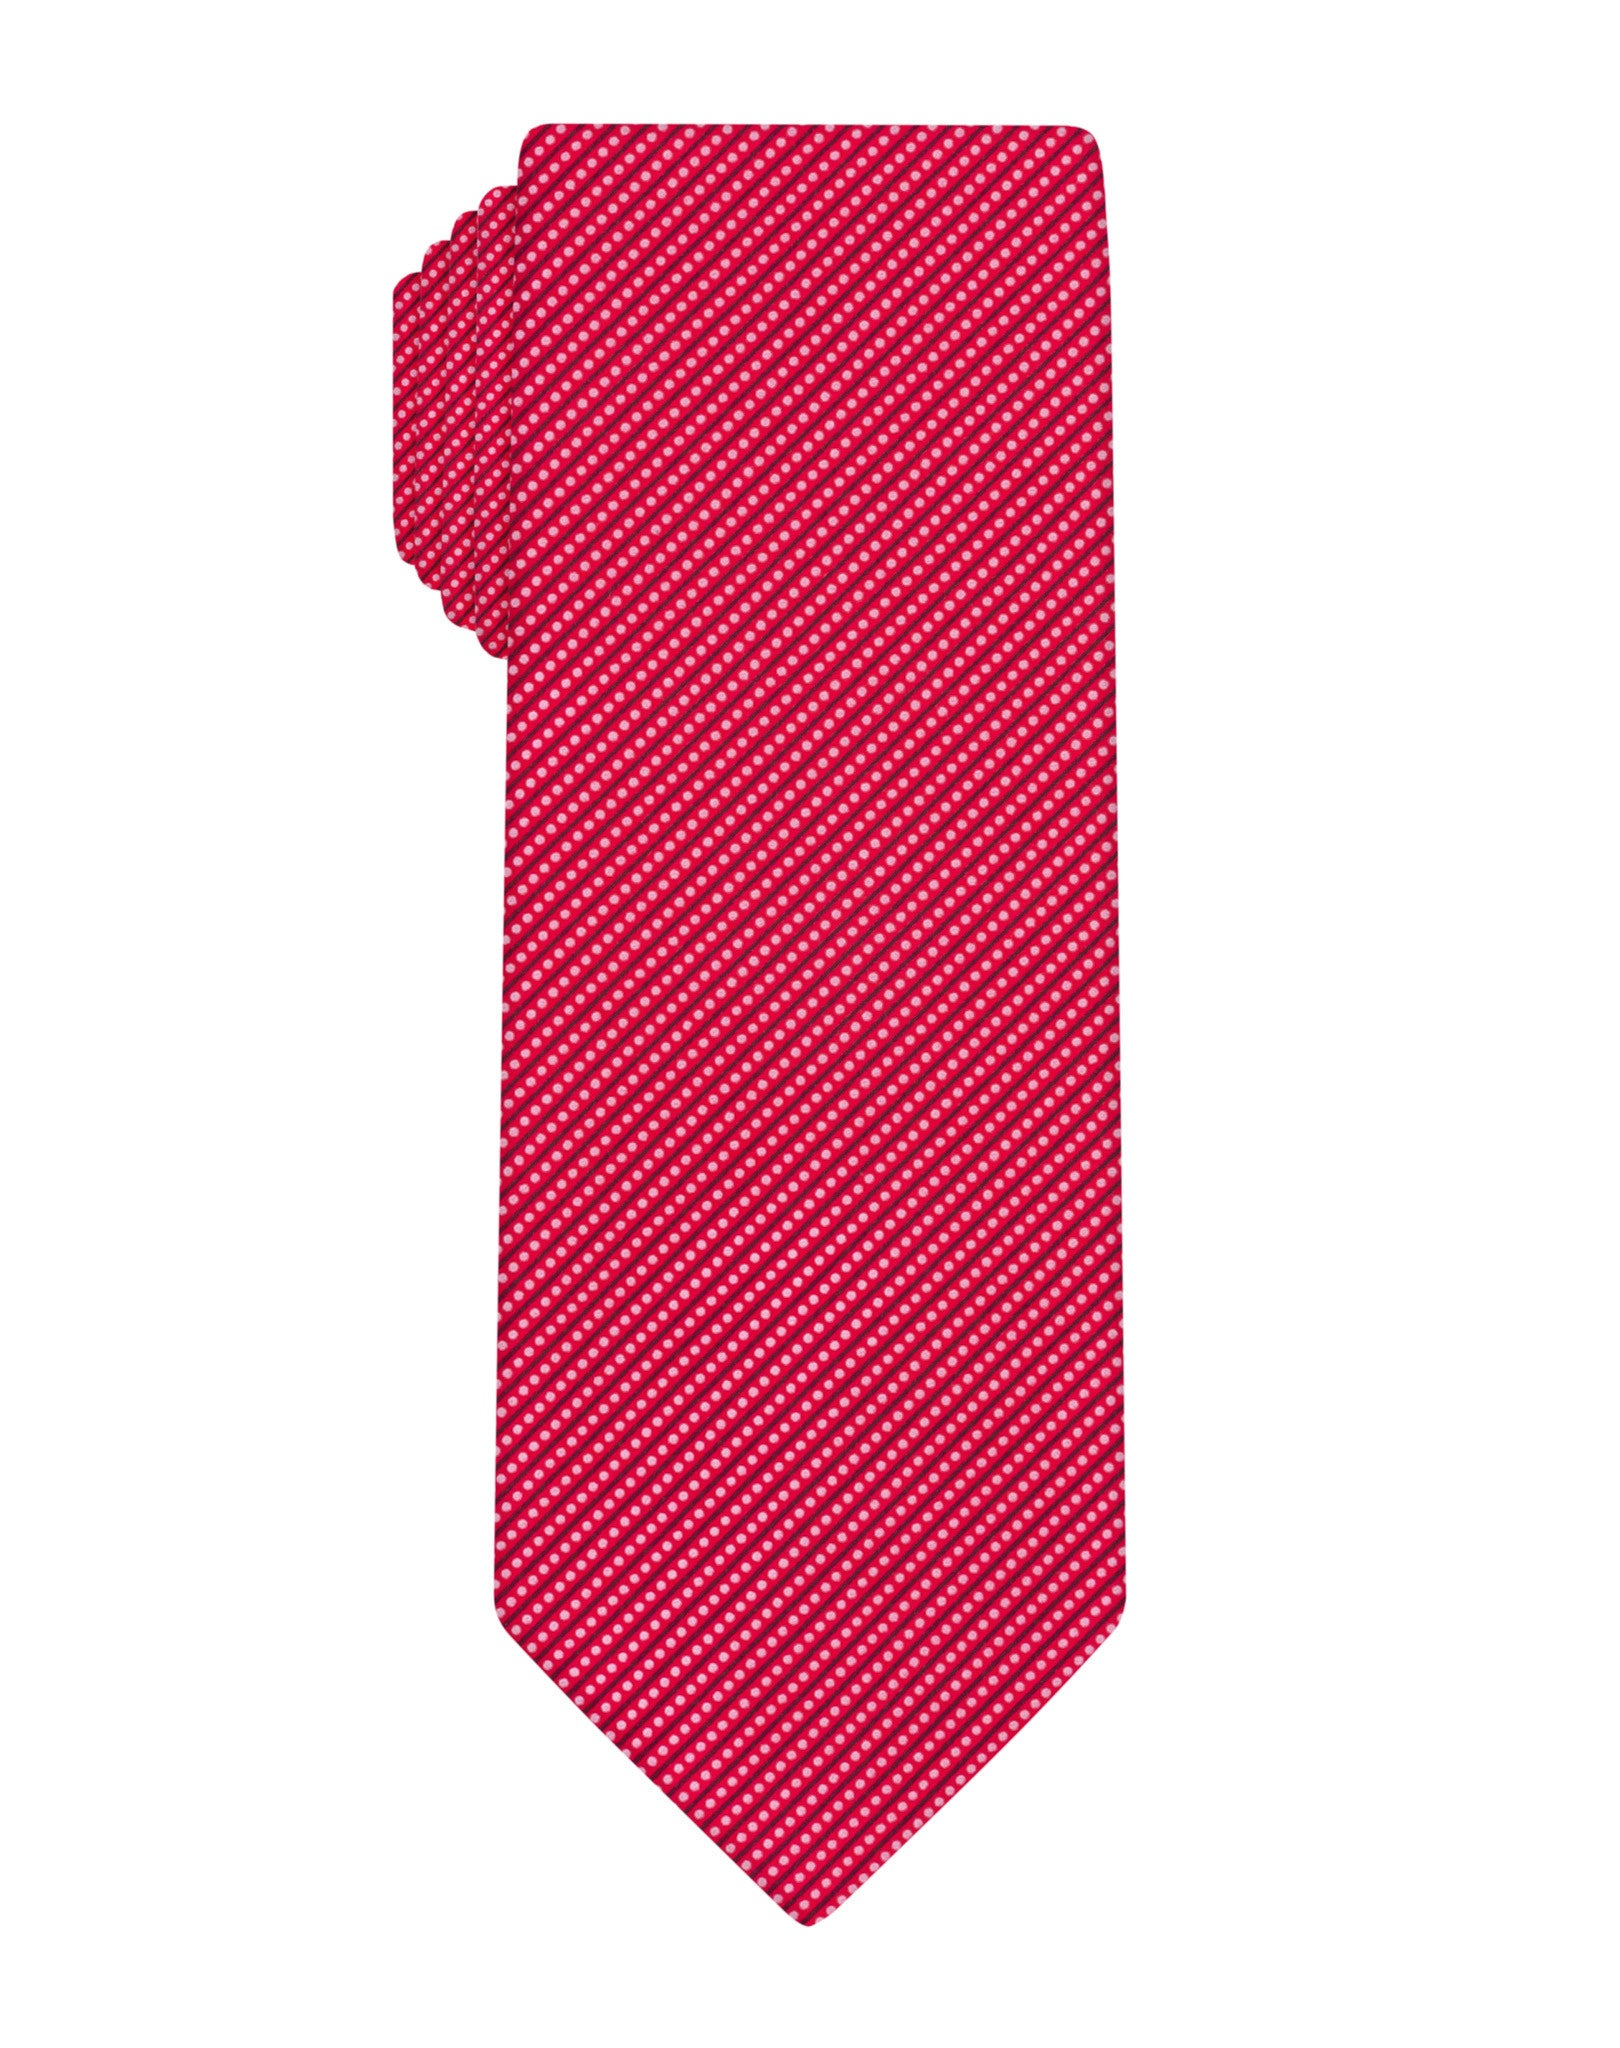 Red Handprinted Mini Dots Tie